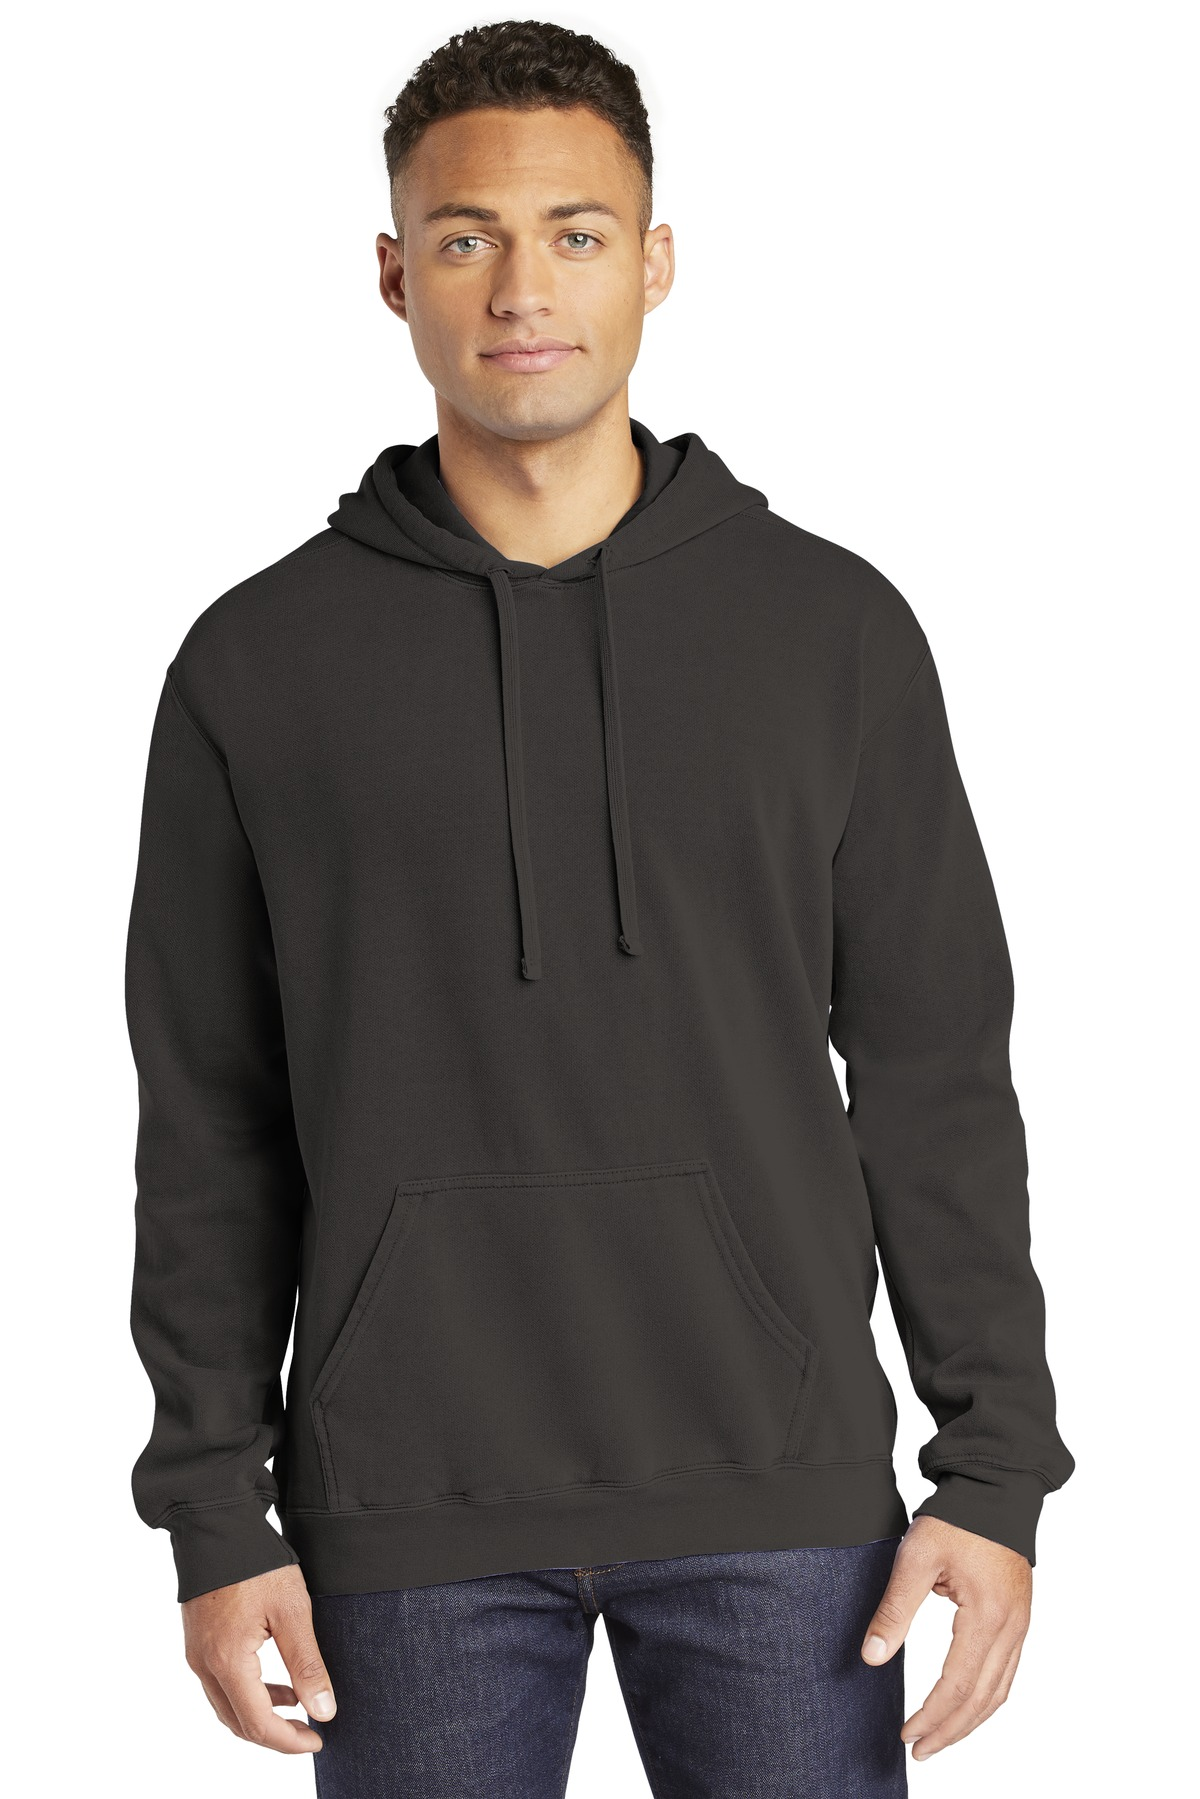 COMFORT COLORS  ®  Ring Spun Hooded Sweatshirt. 1567 - Pepper